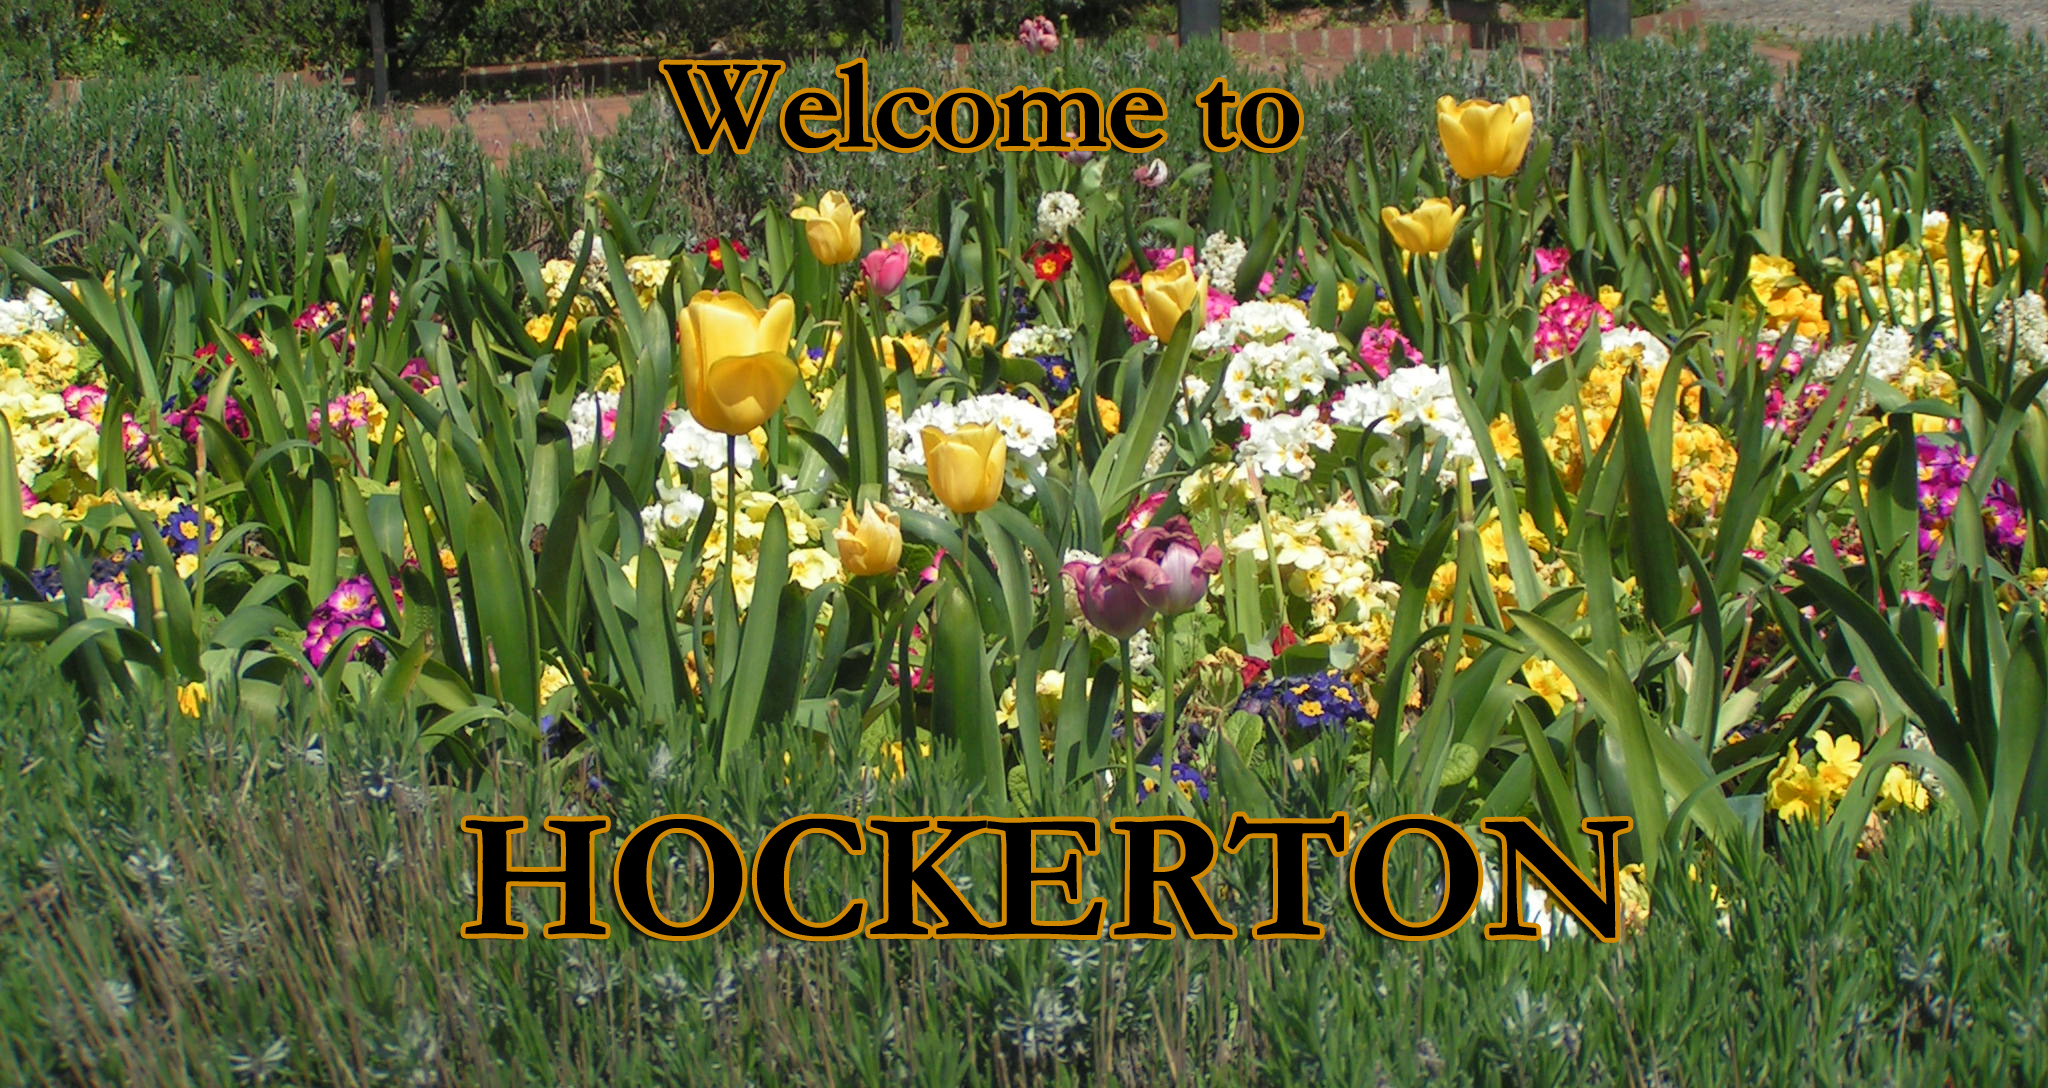 Parish Precept - making Hockerton beautiful?